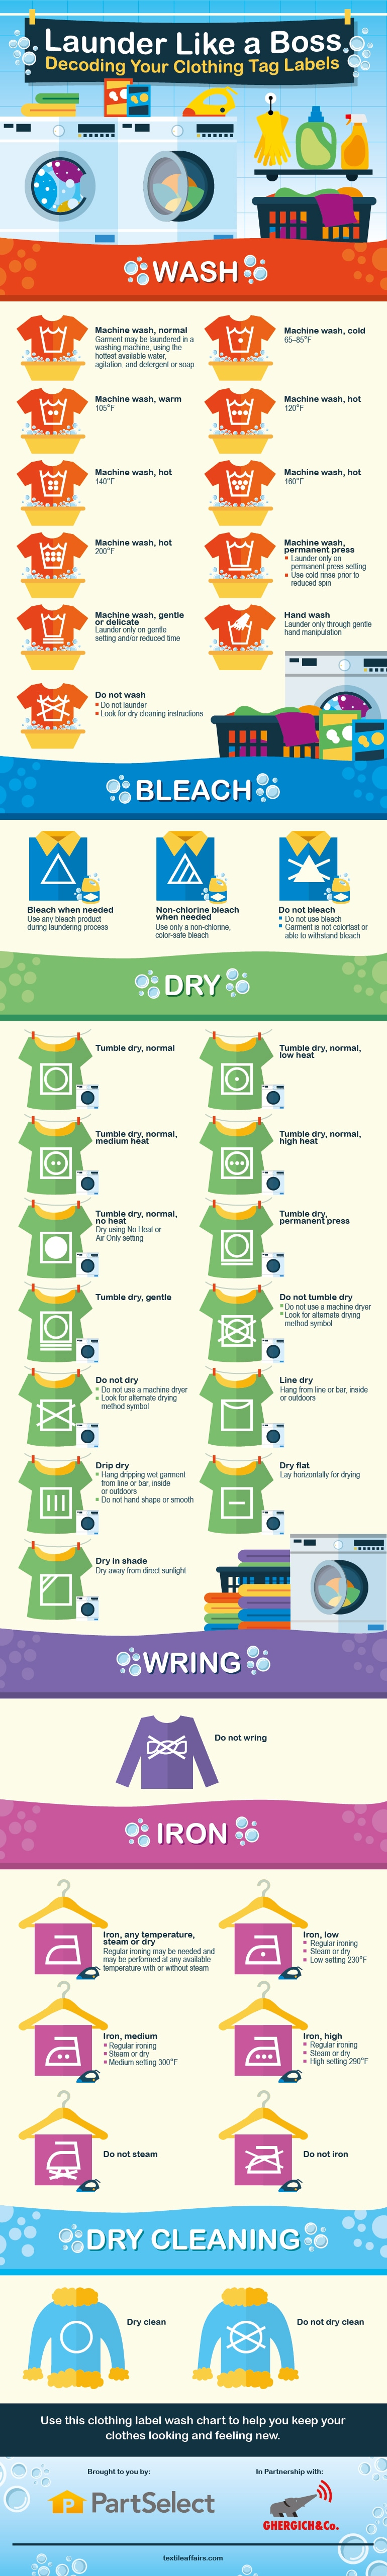 How To Do Your Laundry Like A Pro - Infographic